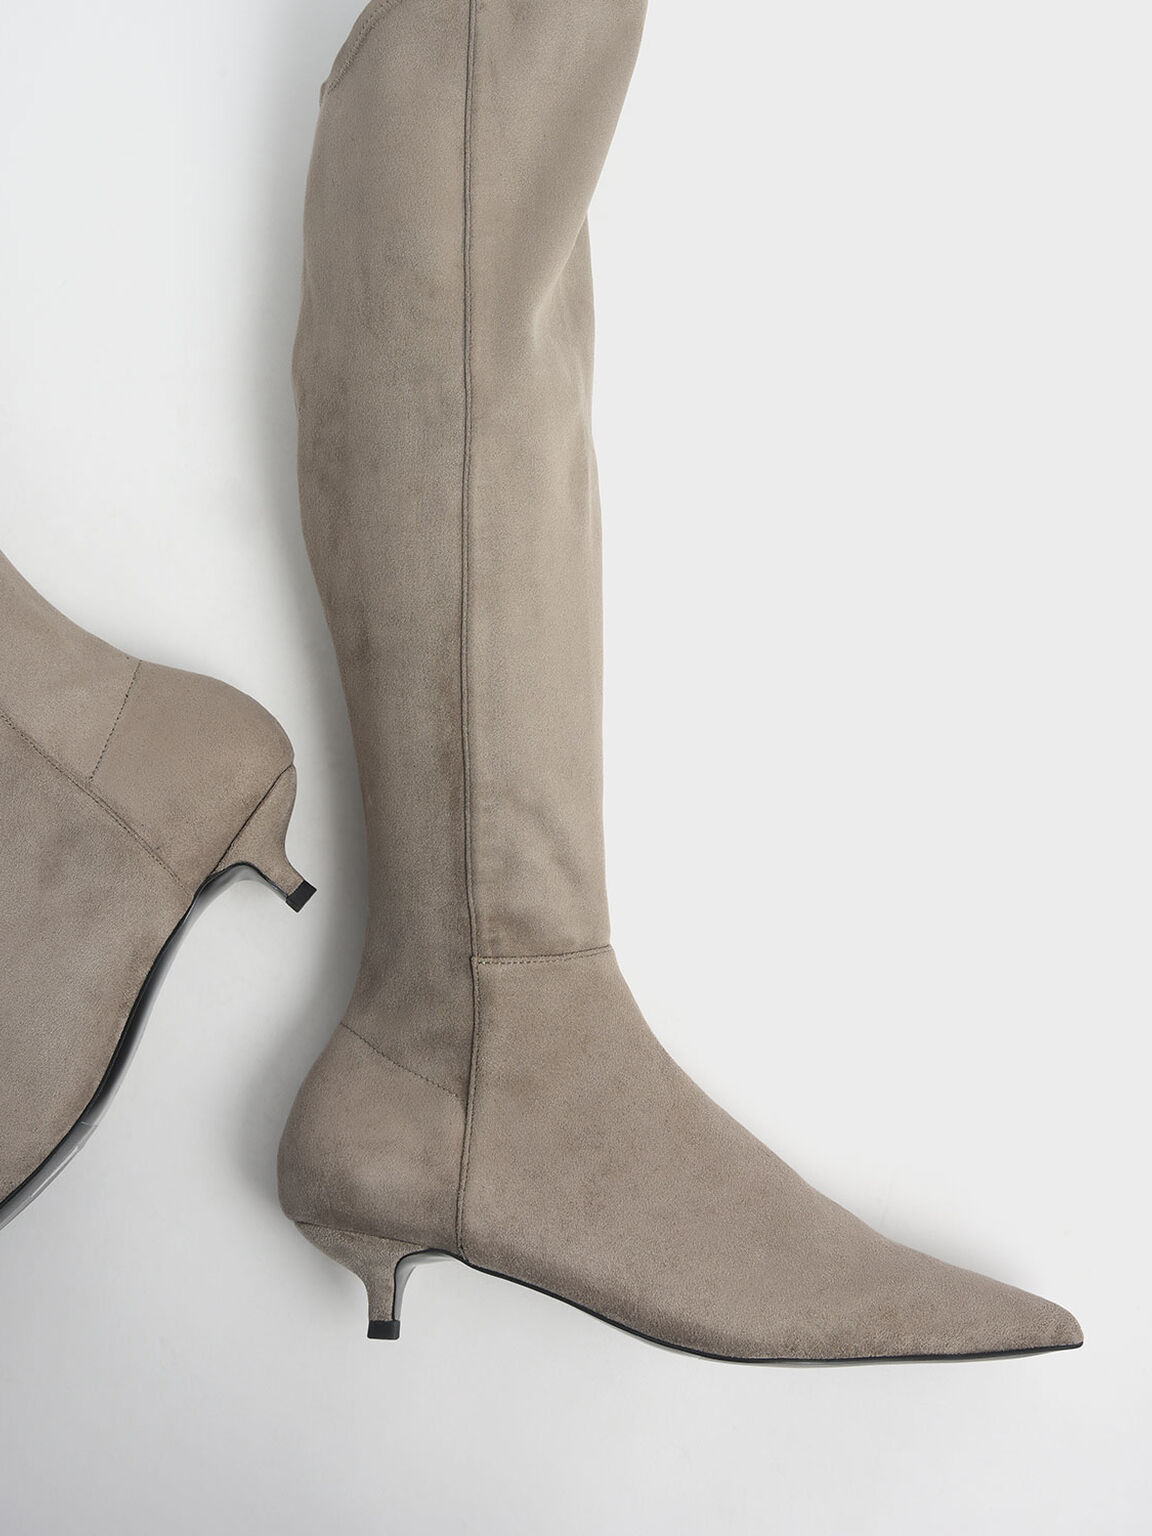 Textured Kitten Heel Knee High Boots, Taupe, hi-res